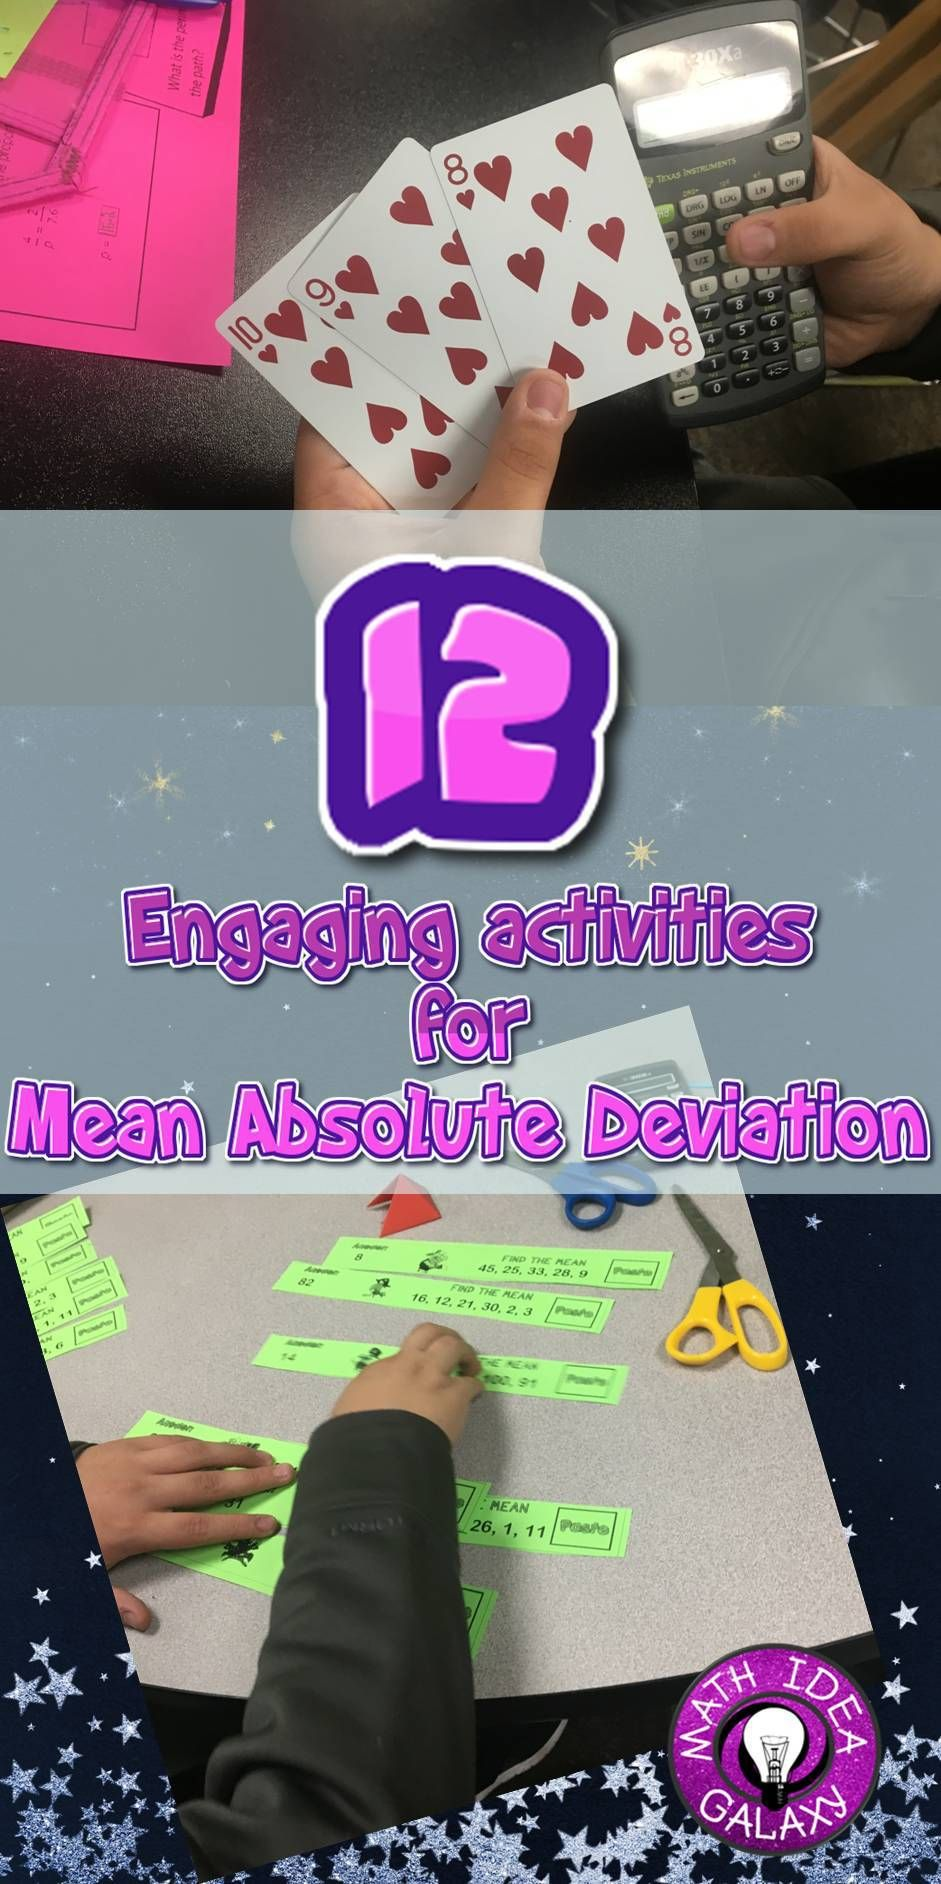 hight resolution of 12 Engaging Activities for Mean Absolute Deviation (MAD)   Learn math  online